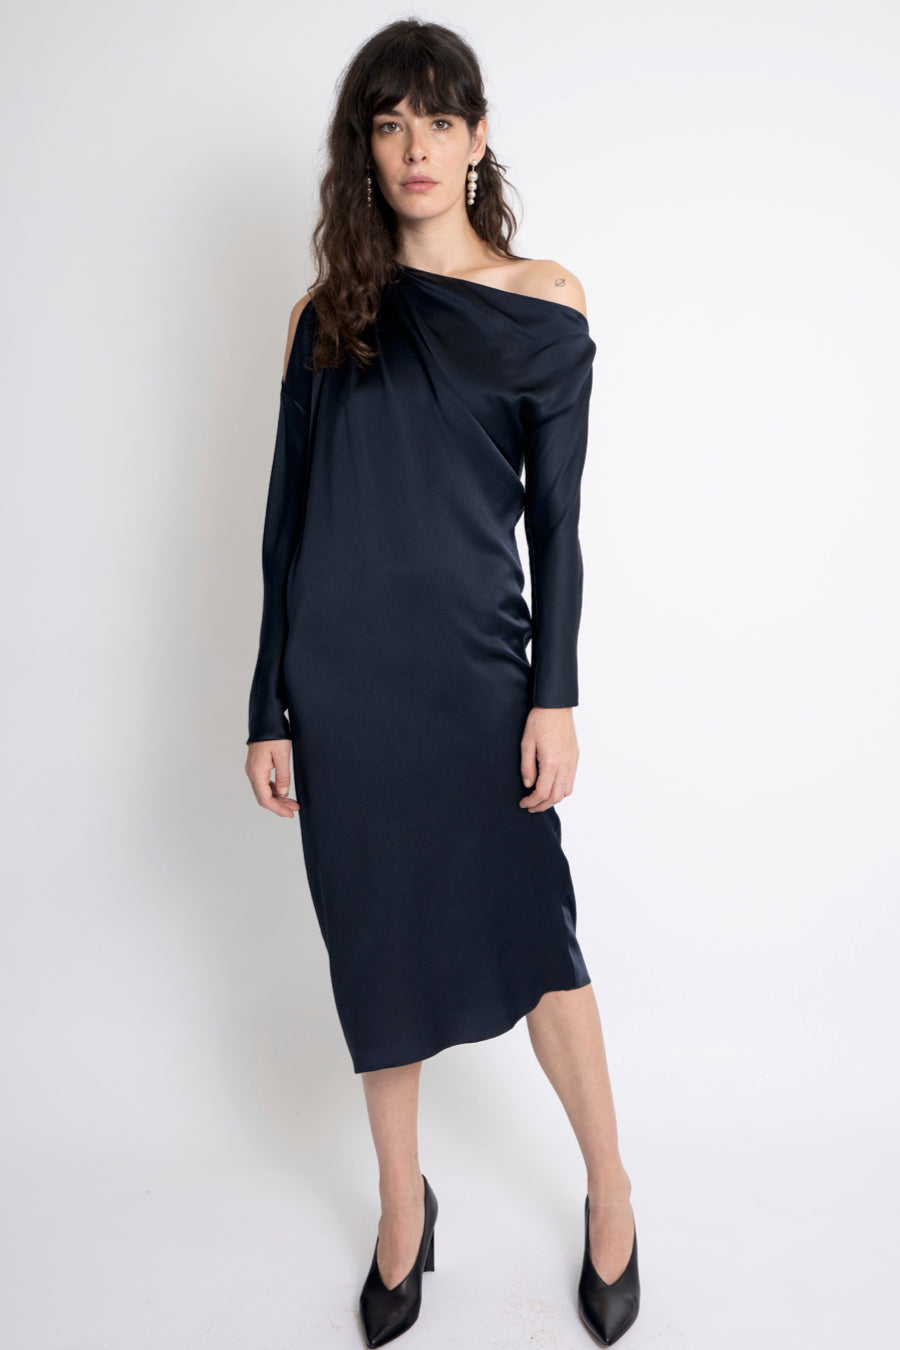 KES Zora Asymmetric Dress FW19 - Midnight